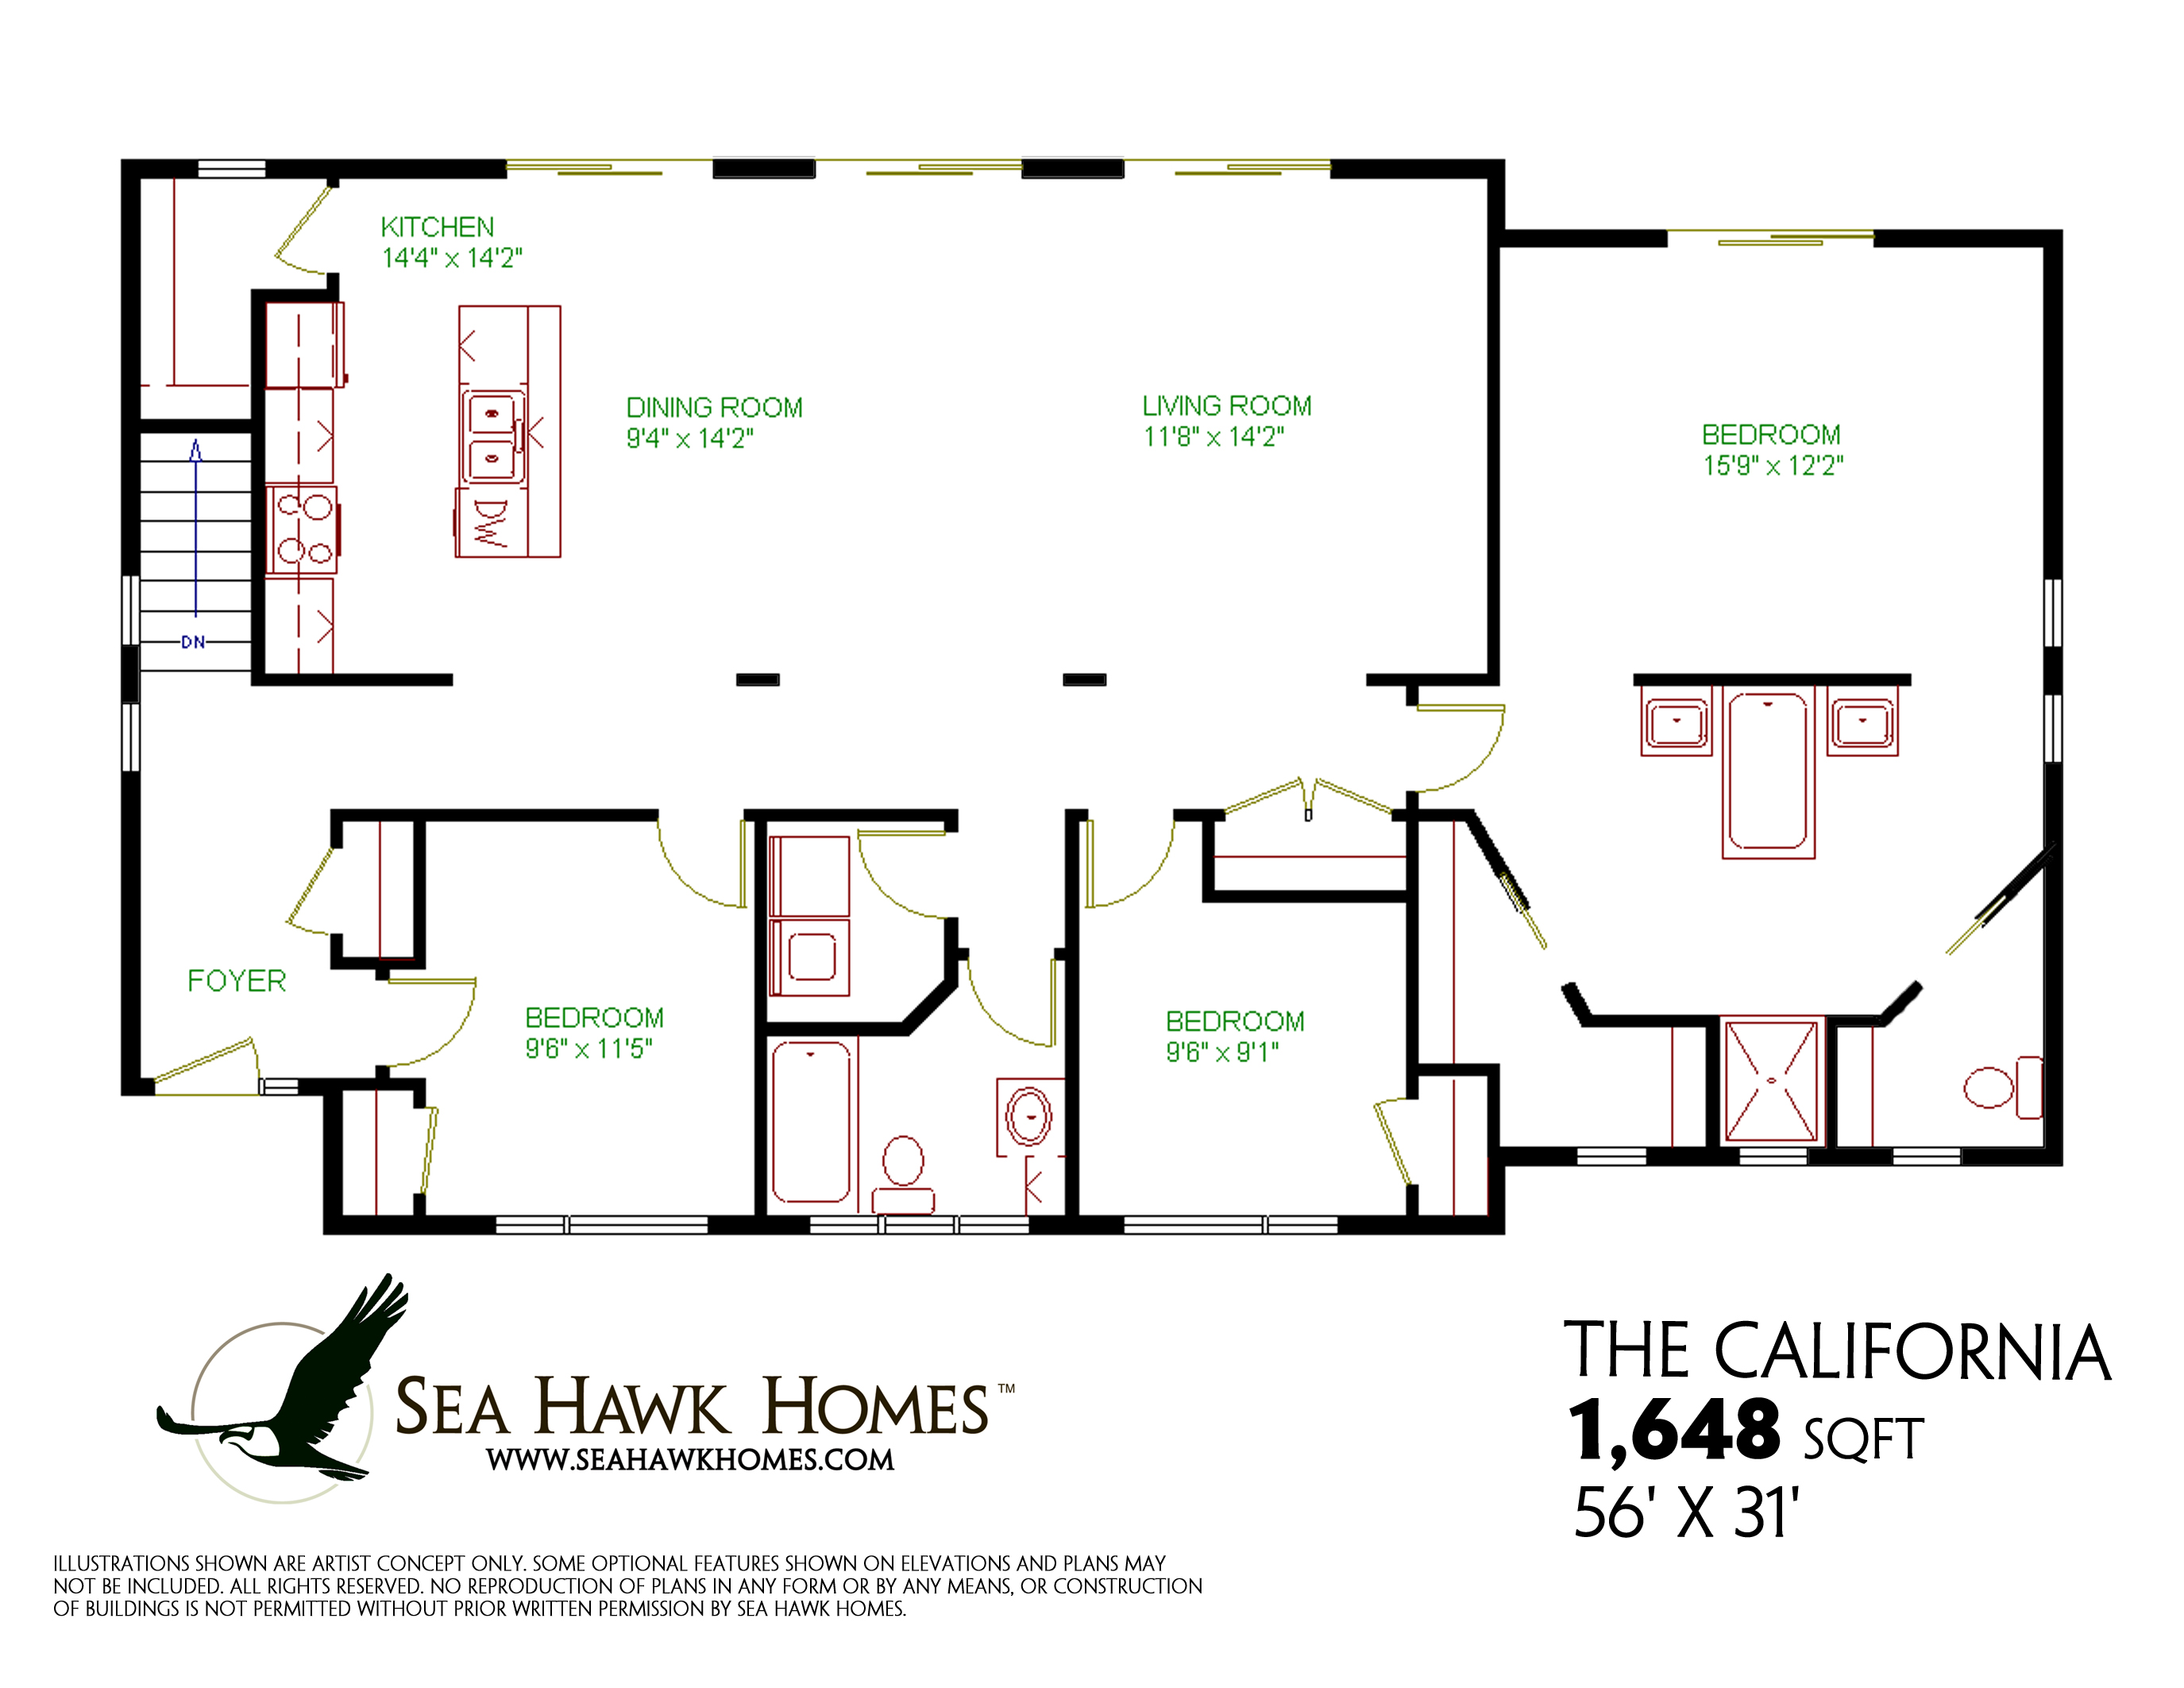 California sea hawk homes for Home plans california